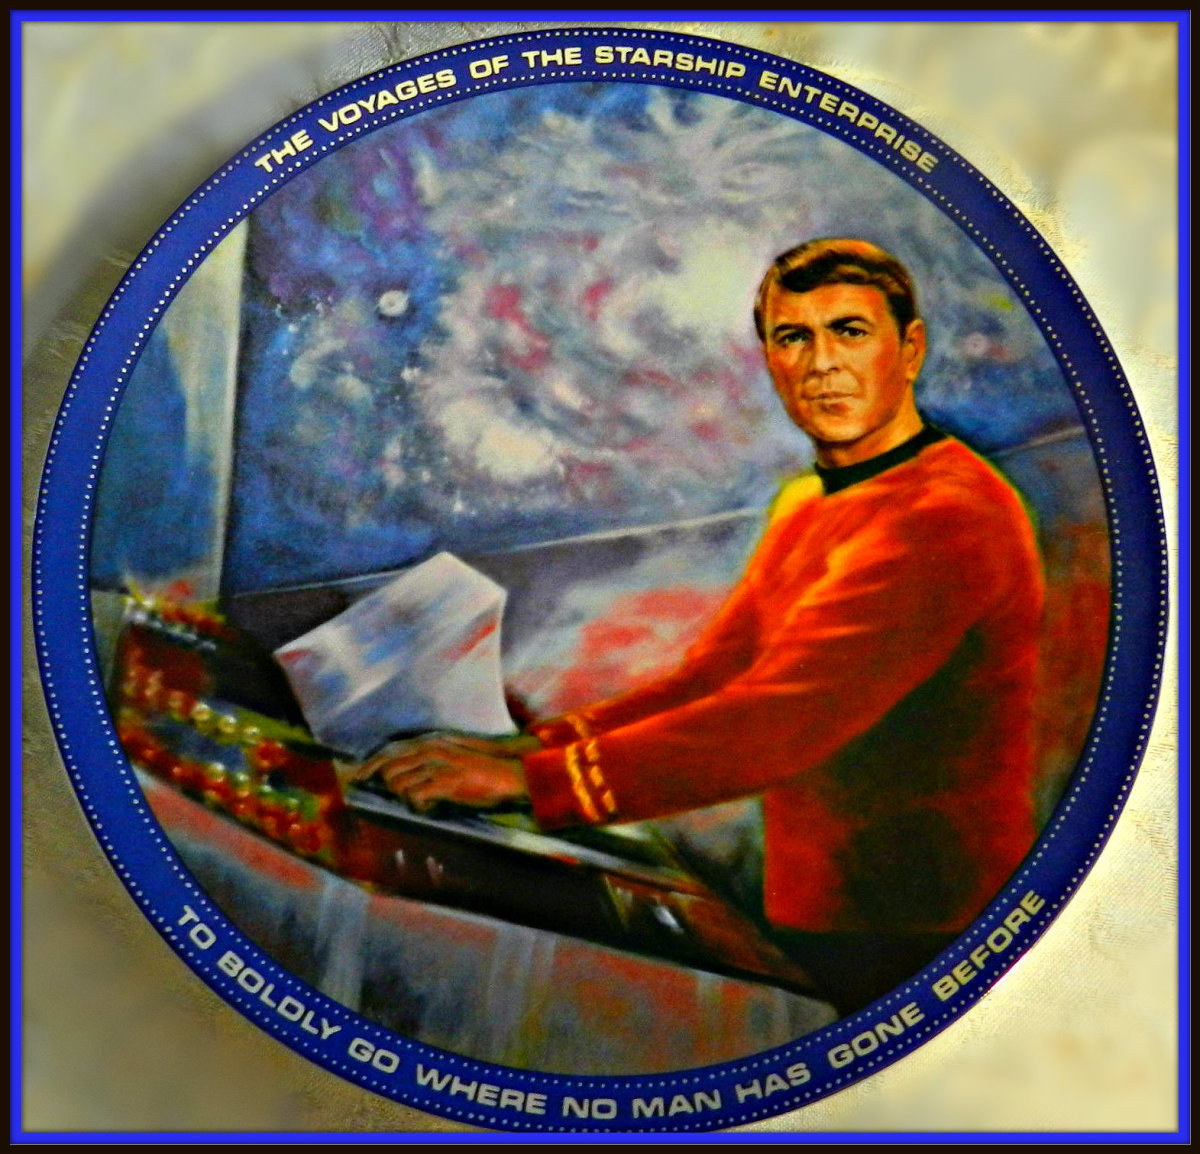 """The late actor James Doohan truly had became """"Scotty"""" to millions of """"Star Trek"""" enthusiasts all over the world."""